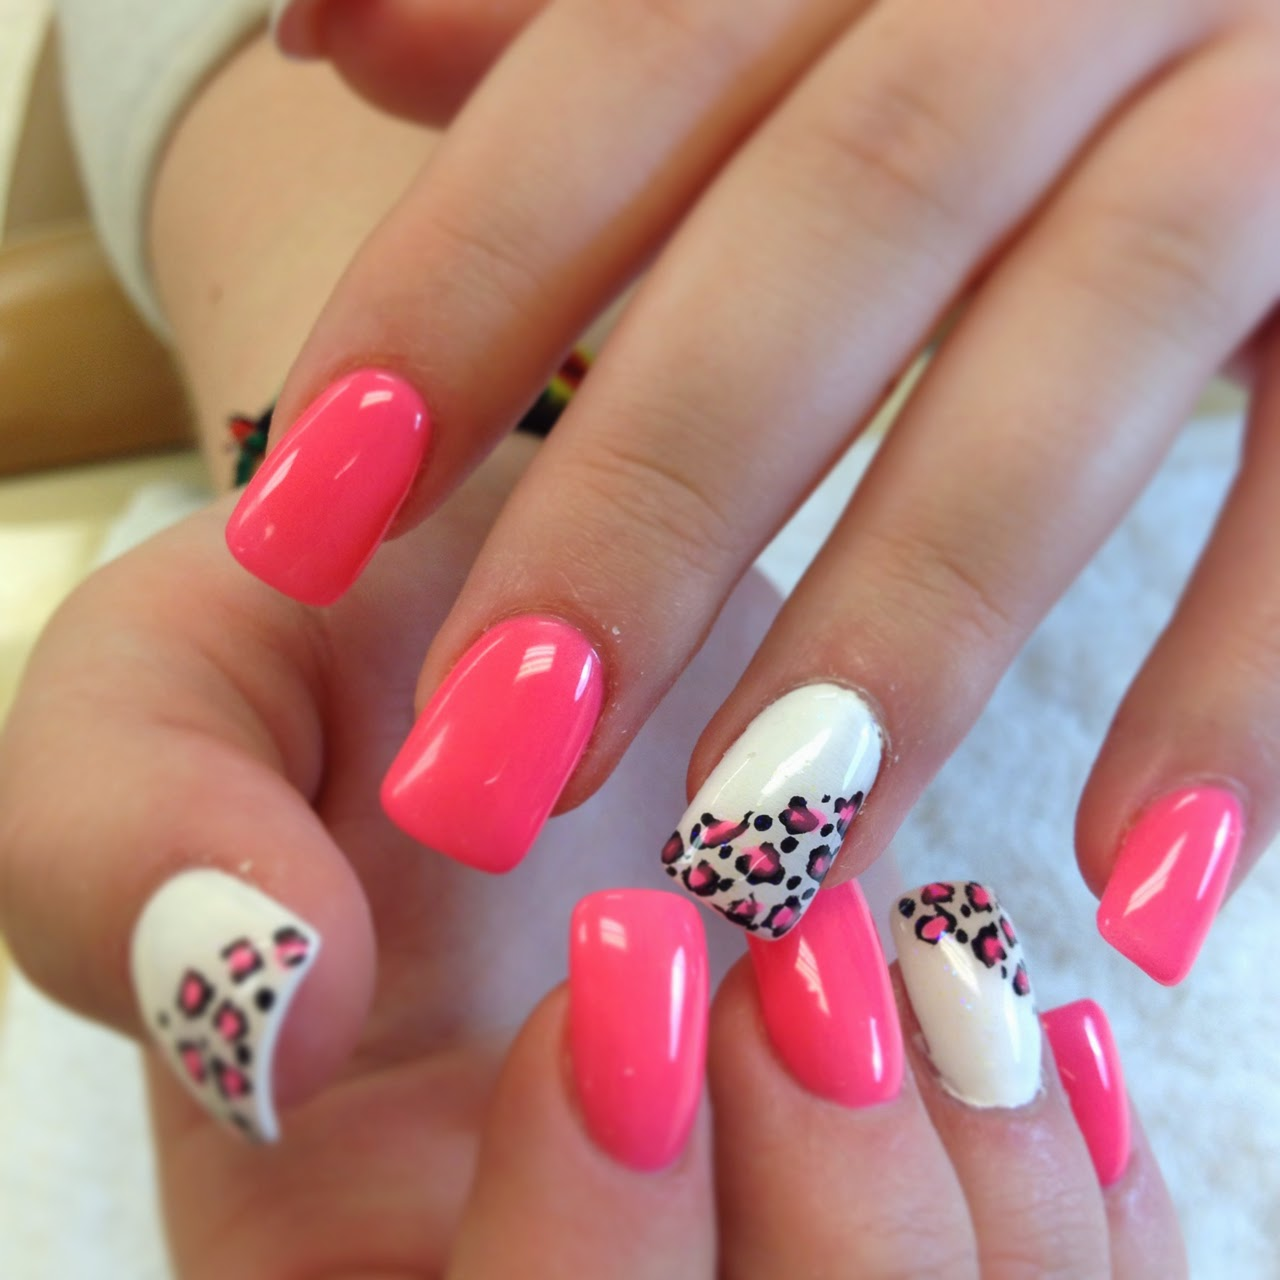 Nail salon designs: Nail Designs Simple & Easy salon spa